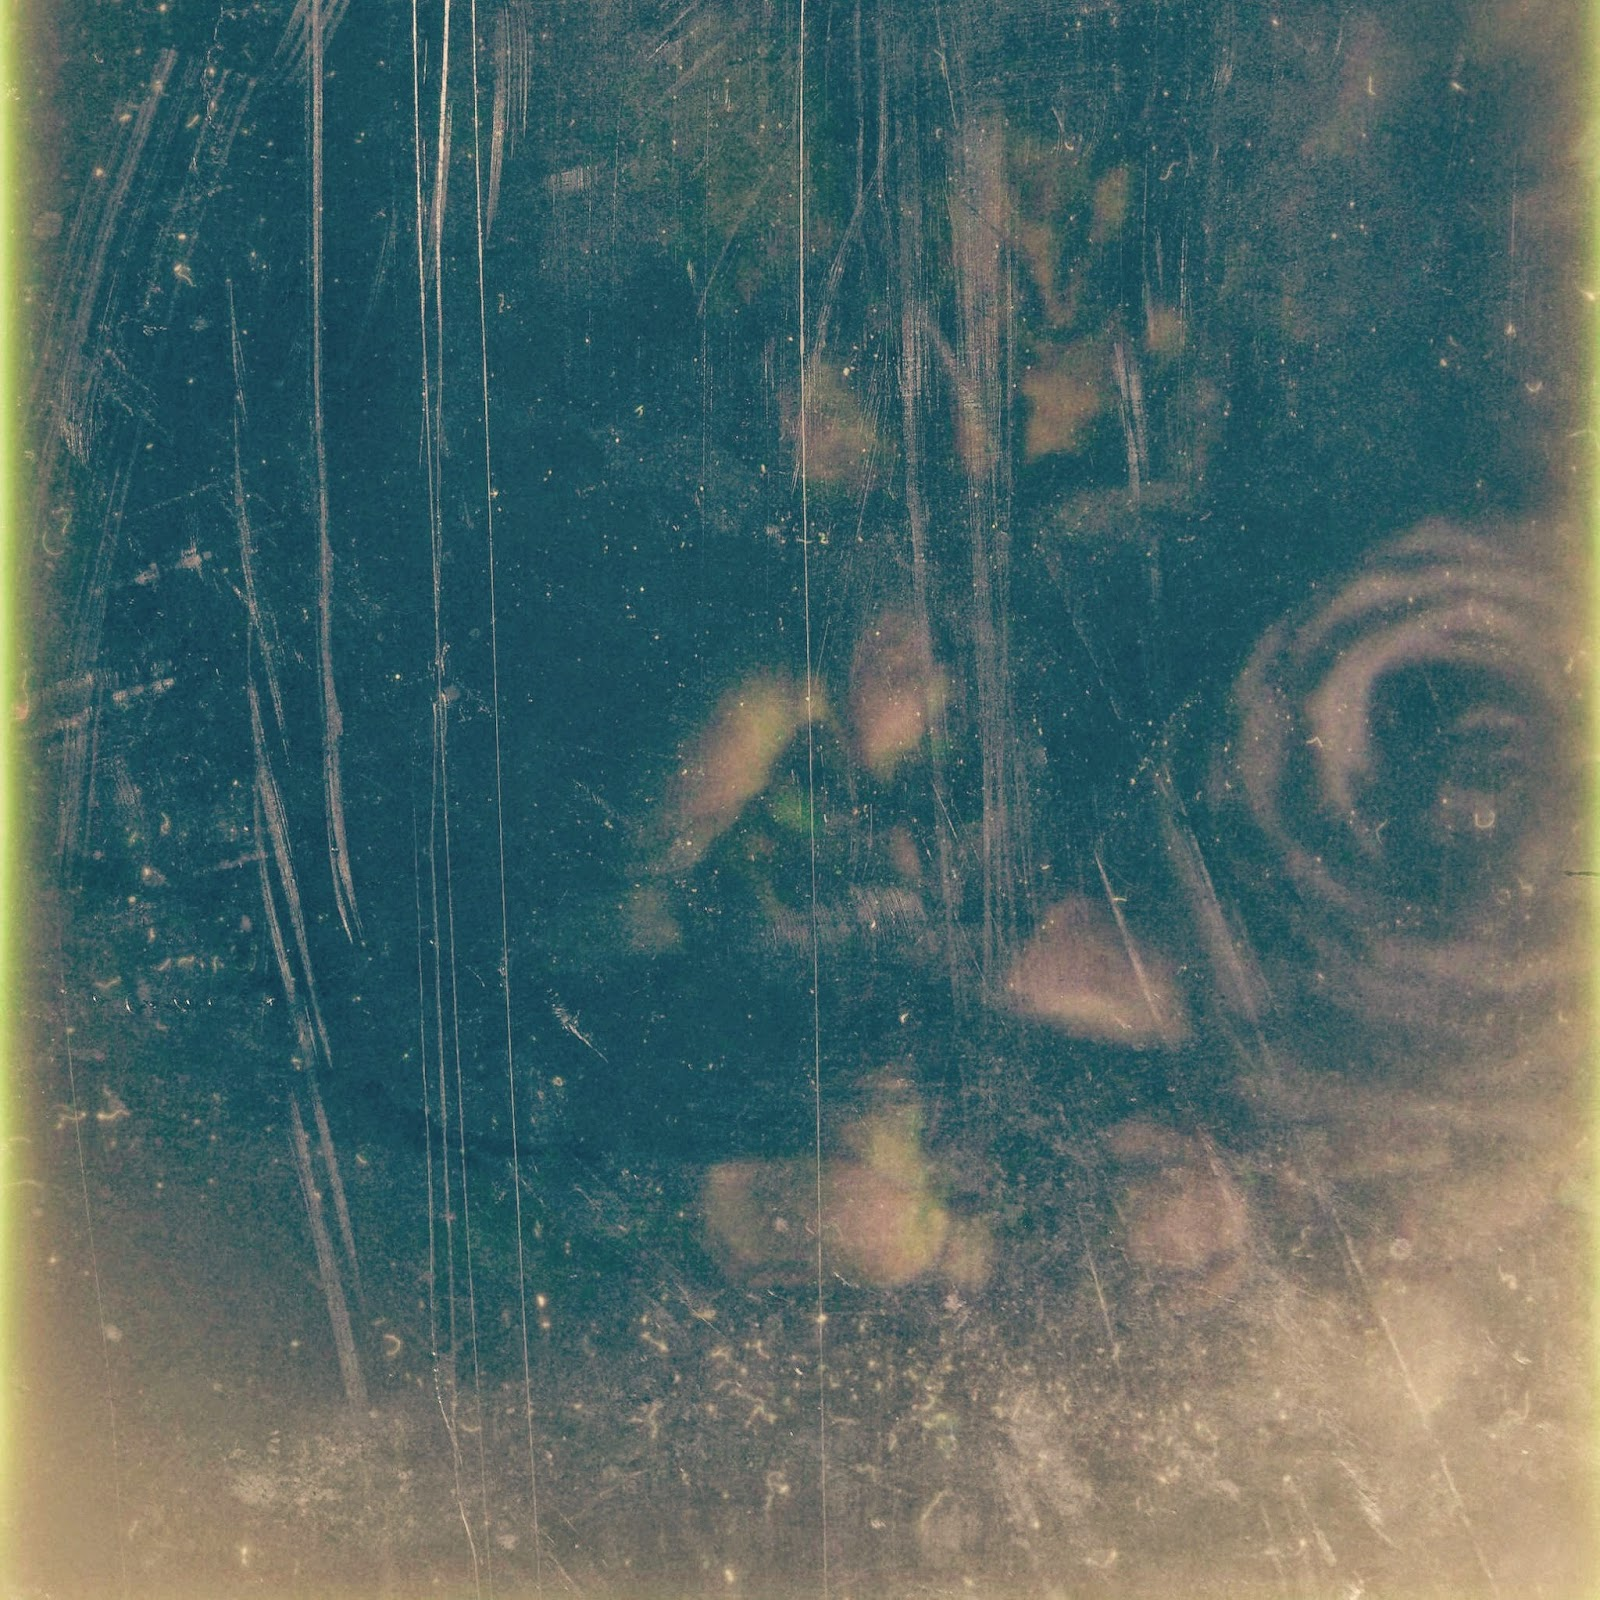 A polaroid of roses